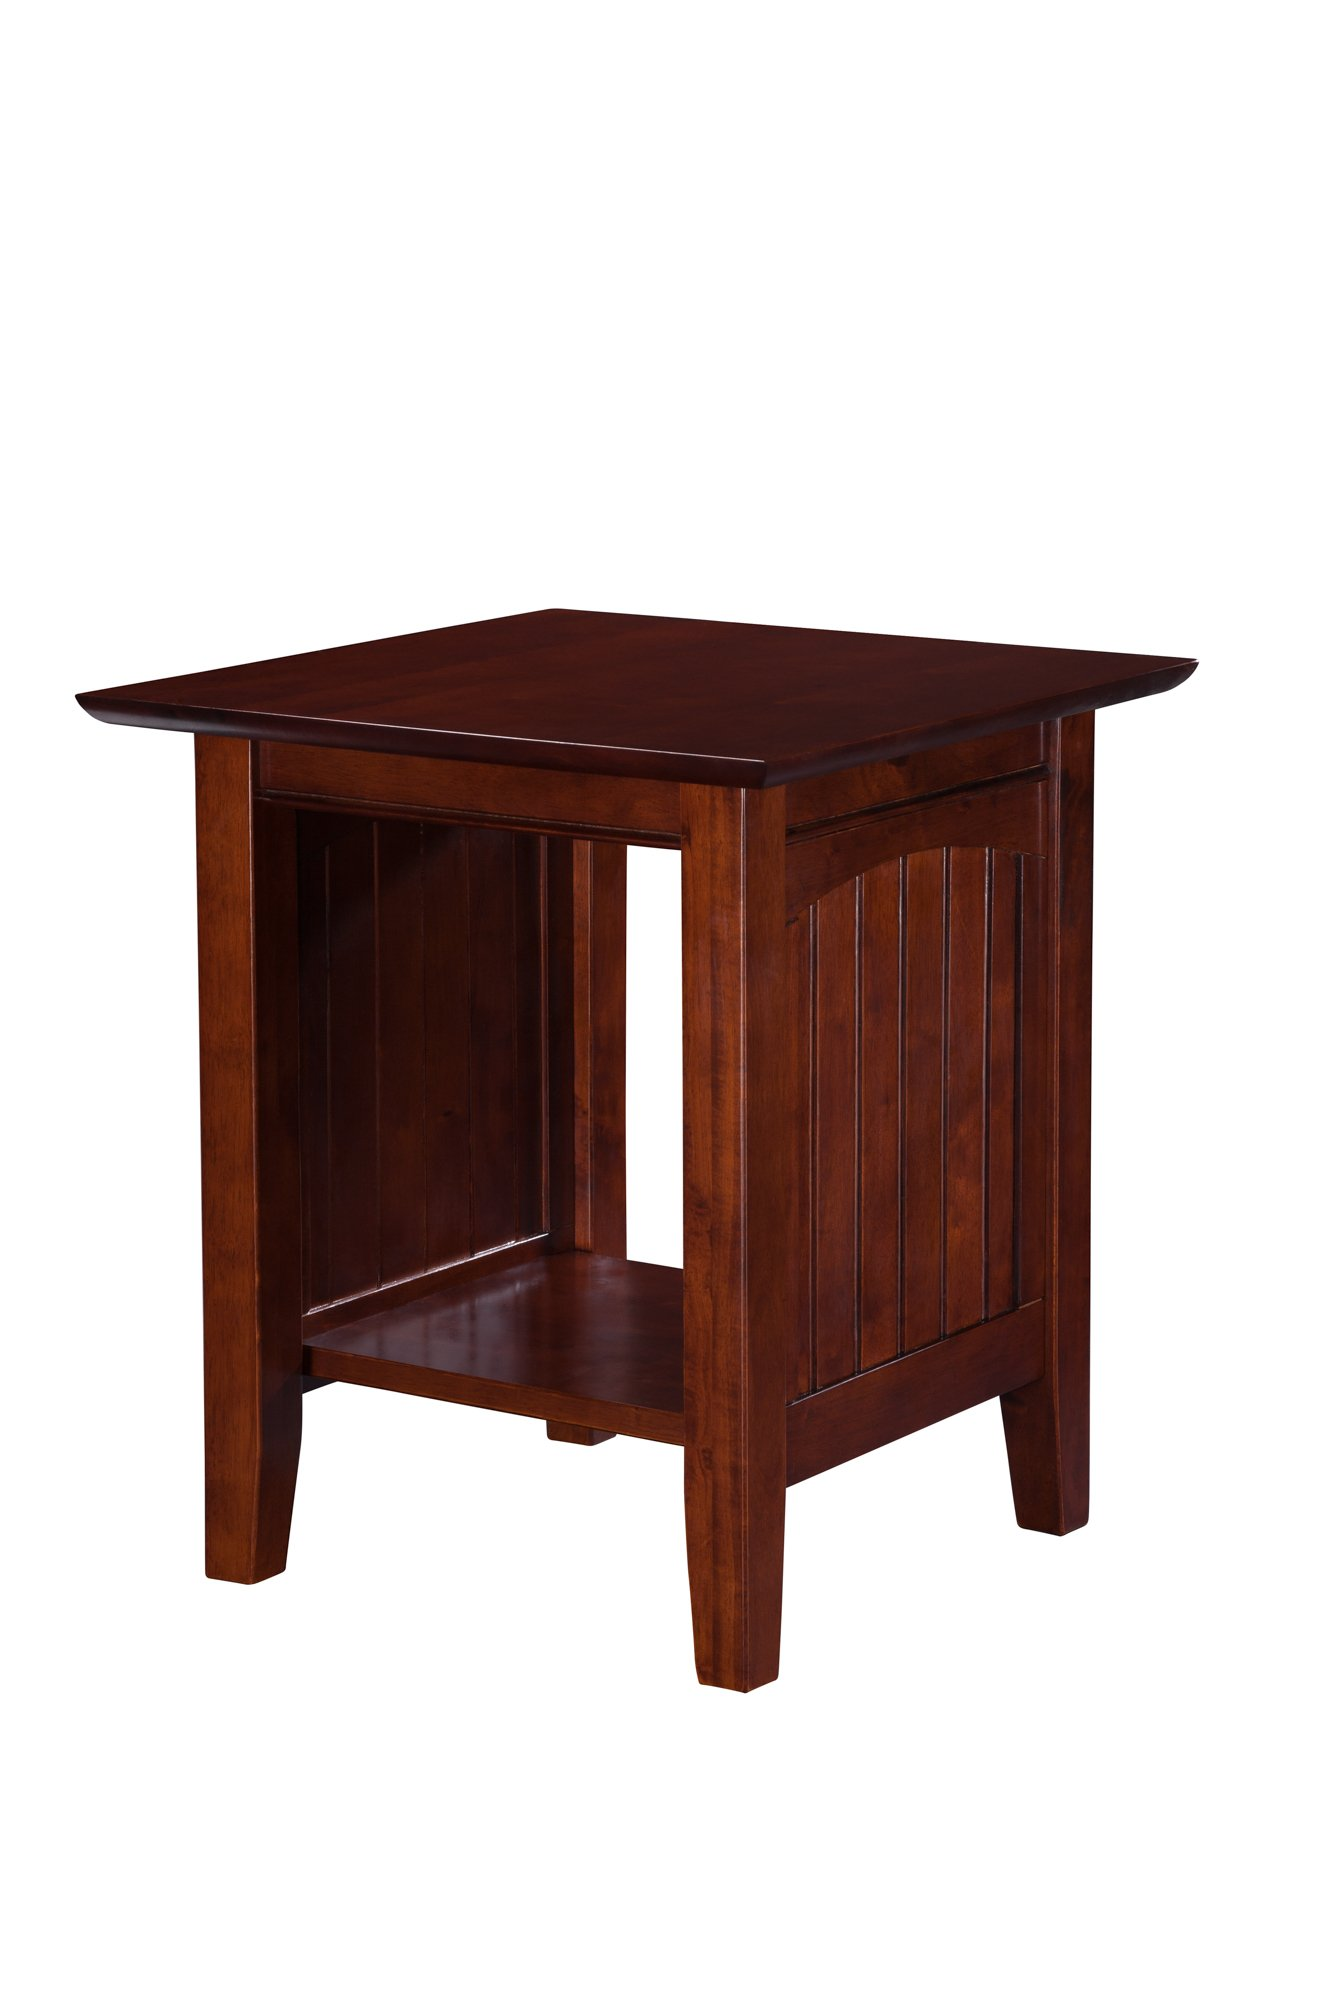 Atlantic Furniture Nantucket End Table, Walnut